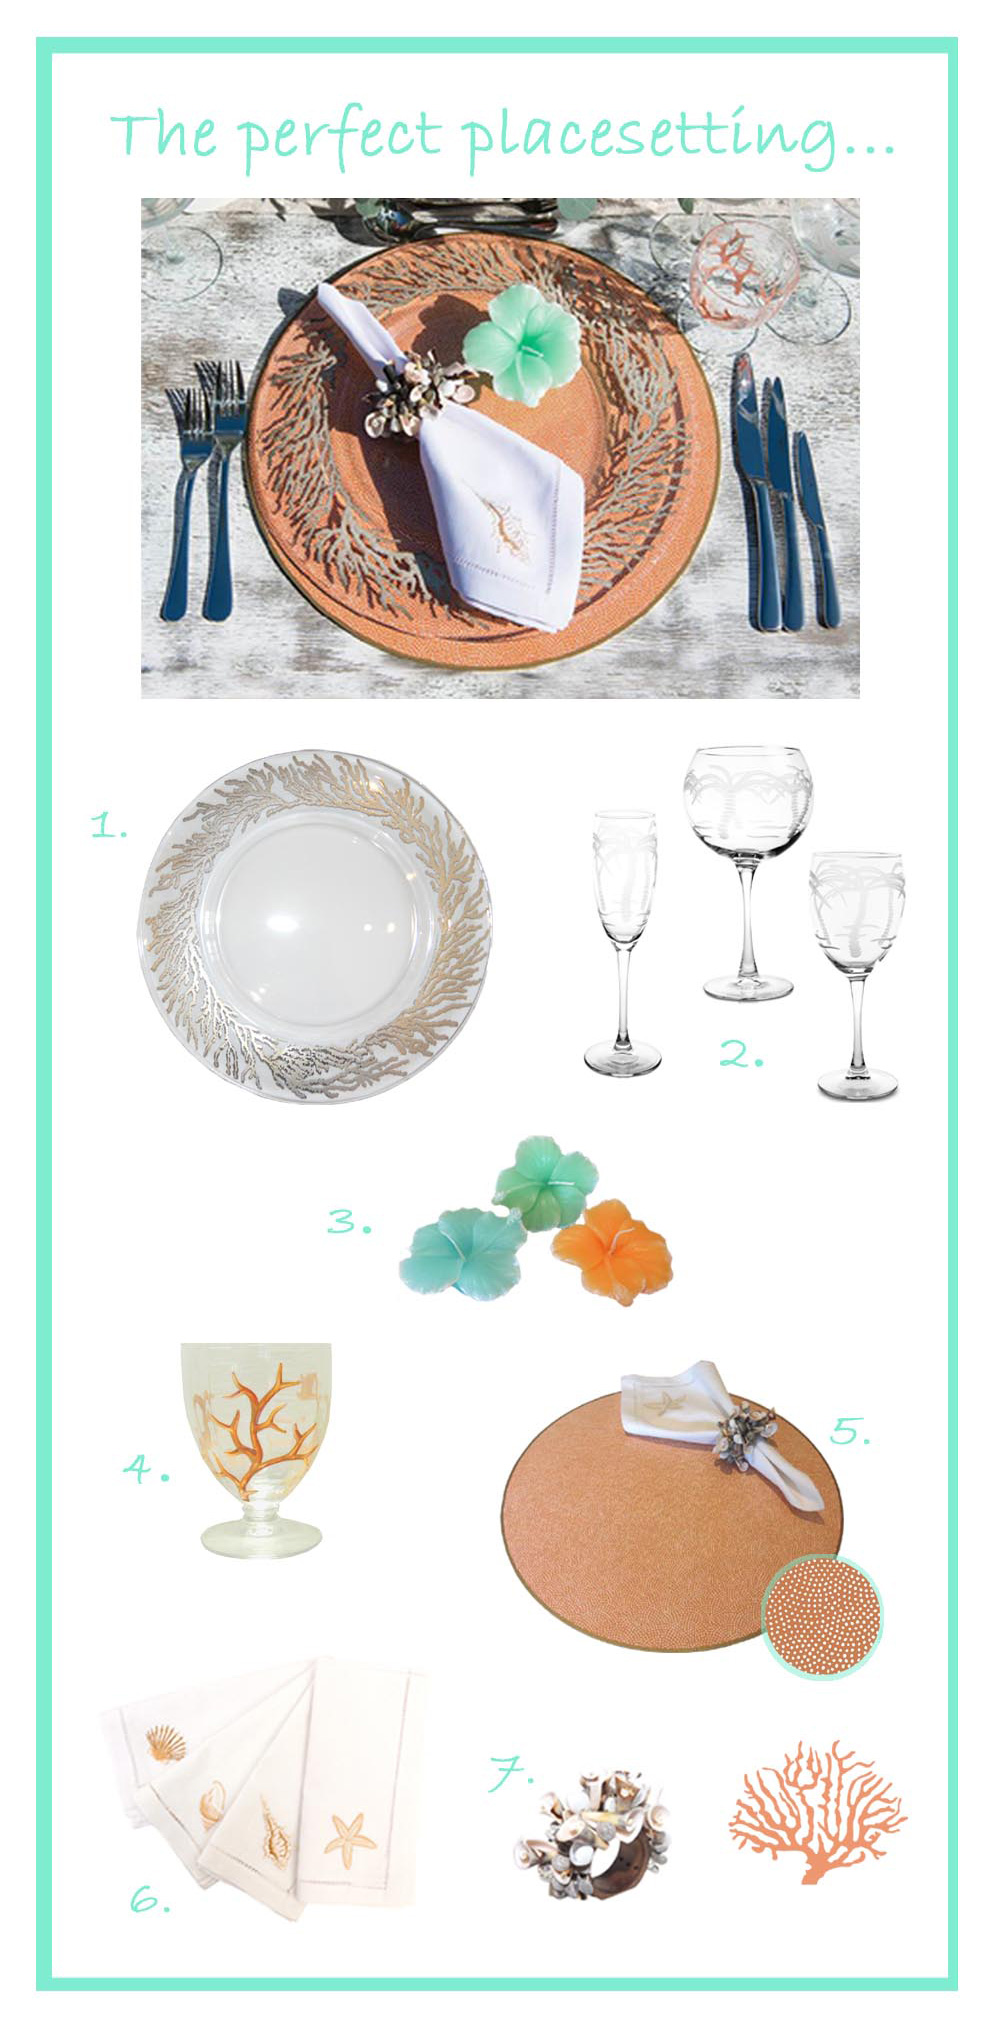 Jenny Blanc - Barbados Wedding Place Setting